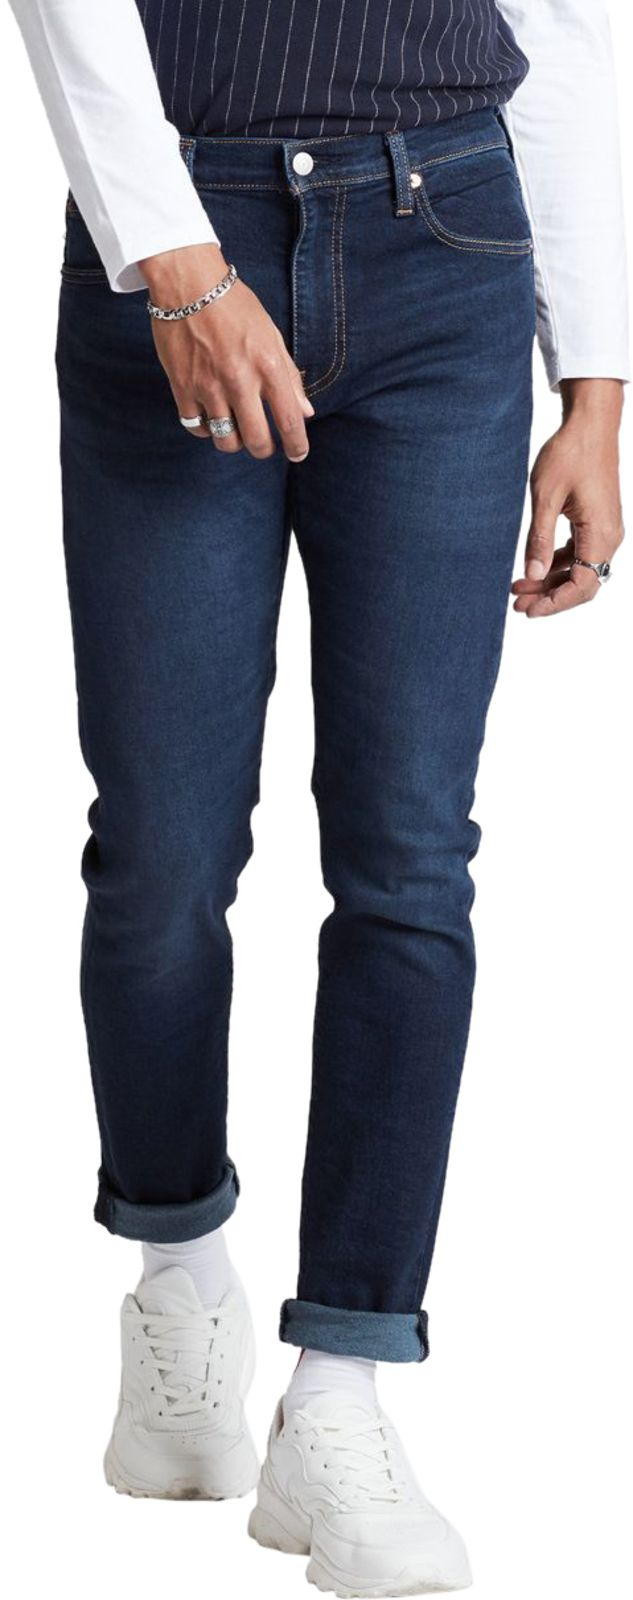 Levi's 512 Slim Taper Fit Denim Jeans